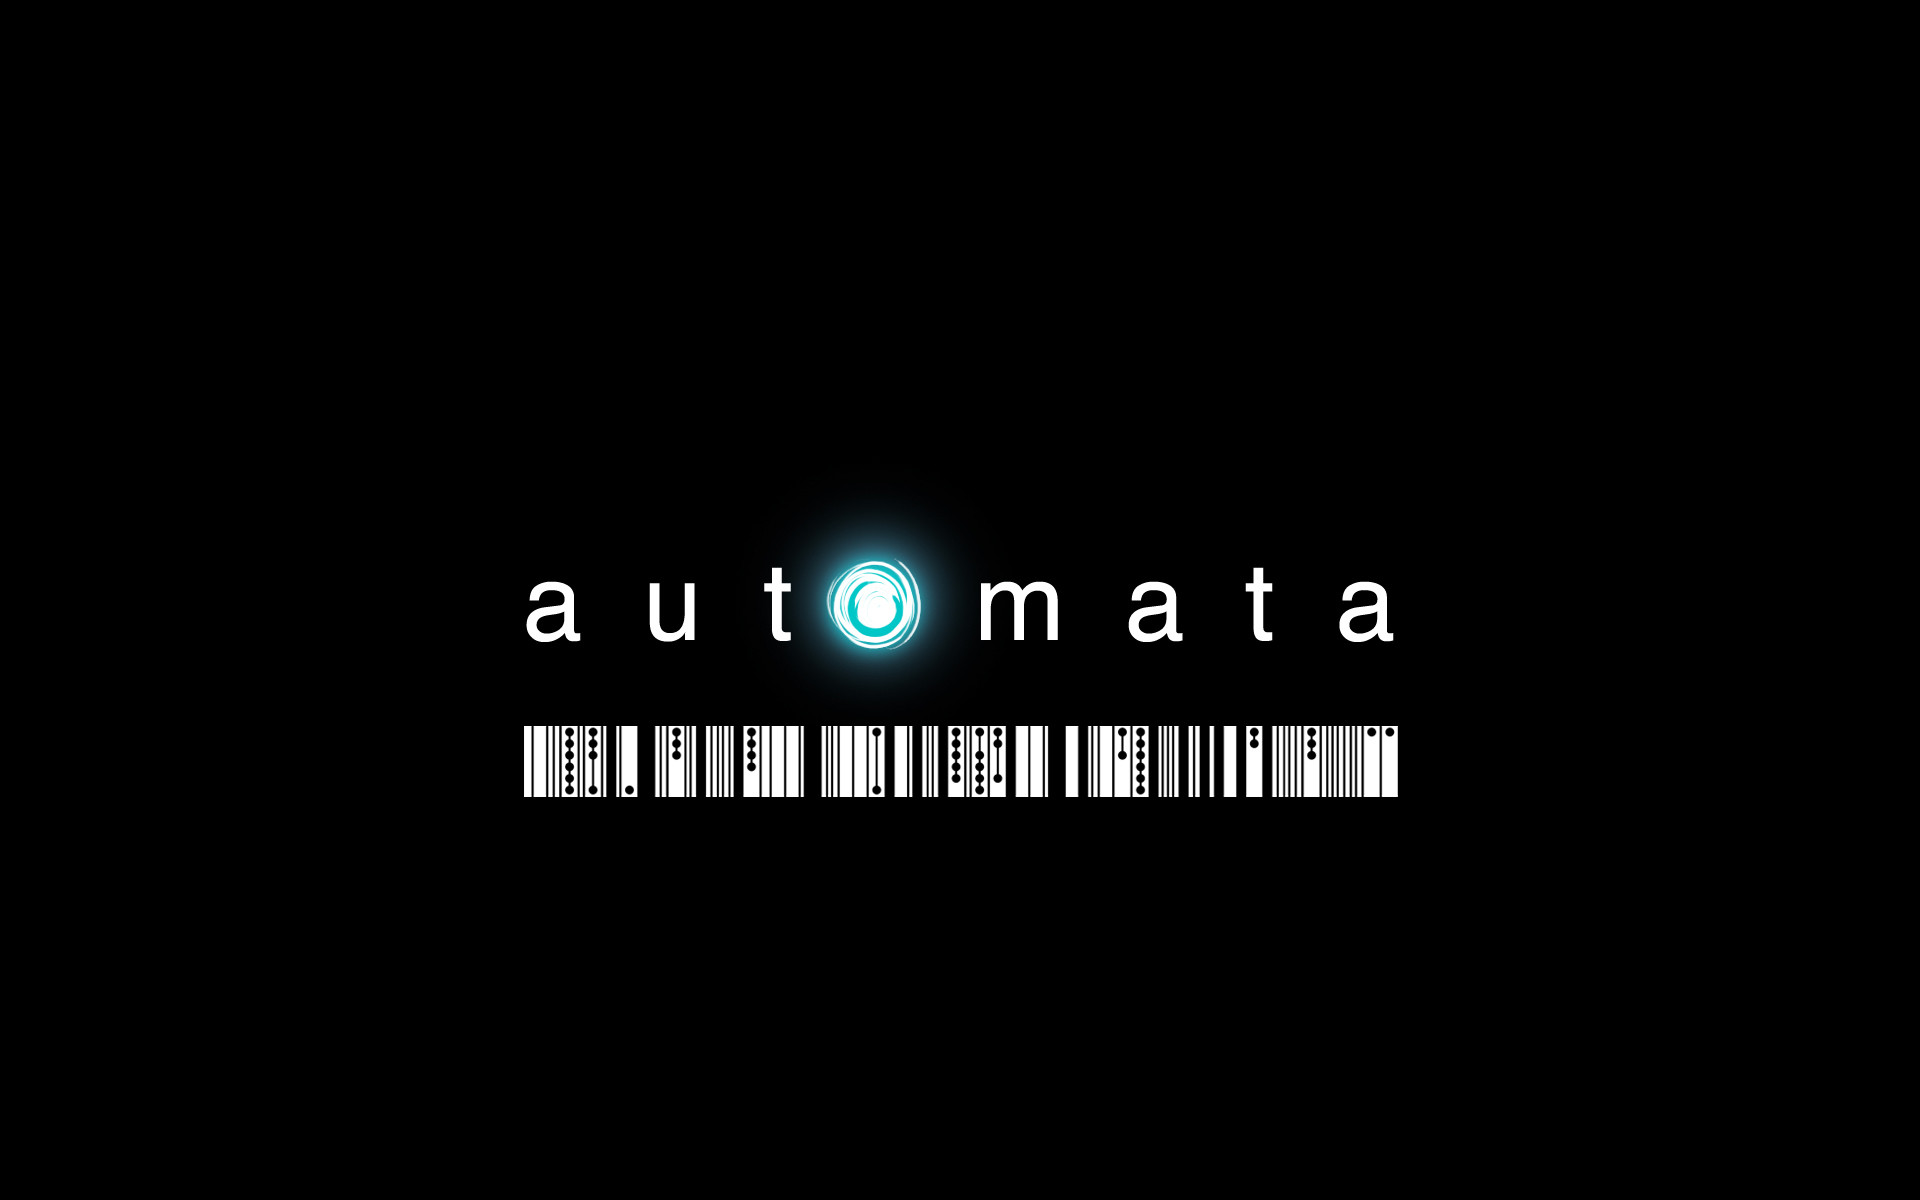 1920x1200 Robots Are Illegal in the Tech Noir Web Series 'Automata'